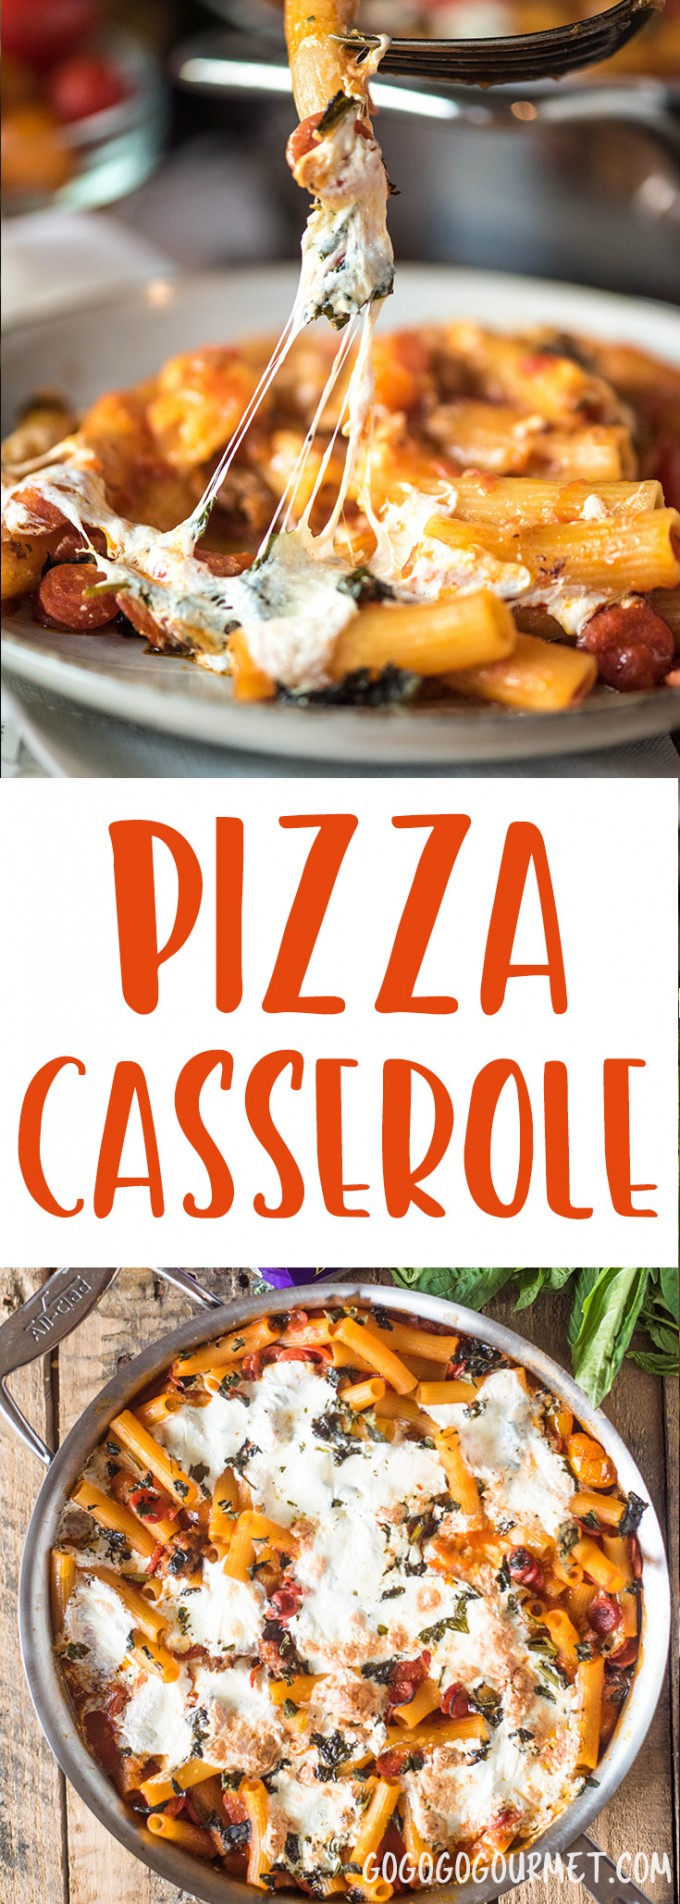 This Pizza Casserole is loaded with everything that you love about pizza! Sausage, pepperoni and fresh mozzarella are baked with rigatoni for a fast dinner!